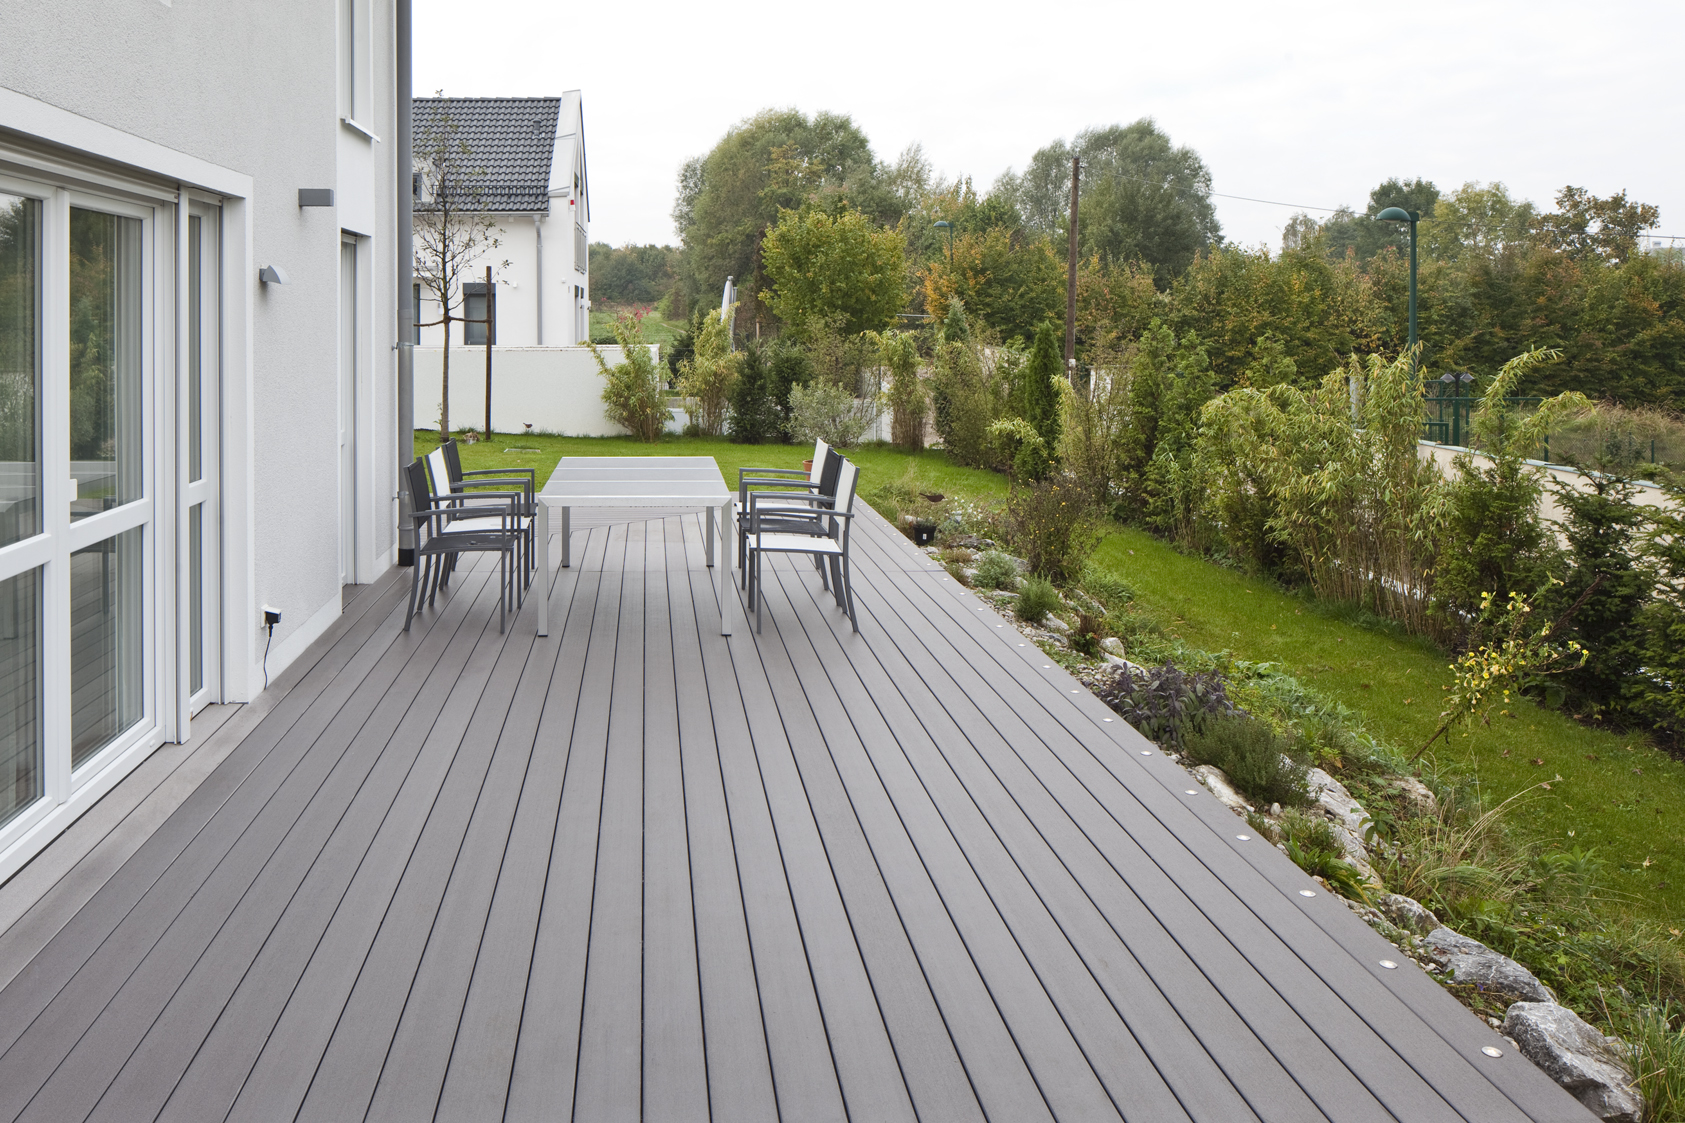 mydeck terrasse basalt 6m lang mit bodenstrahlern bs holzdesign. Black Bedroom Furniture Sets. Home Design Ideas